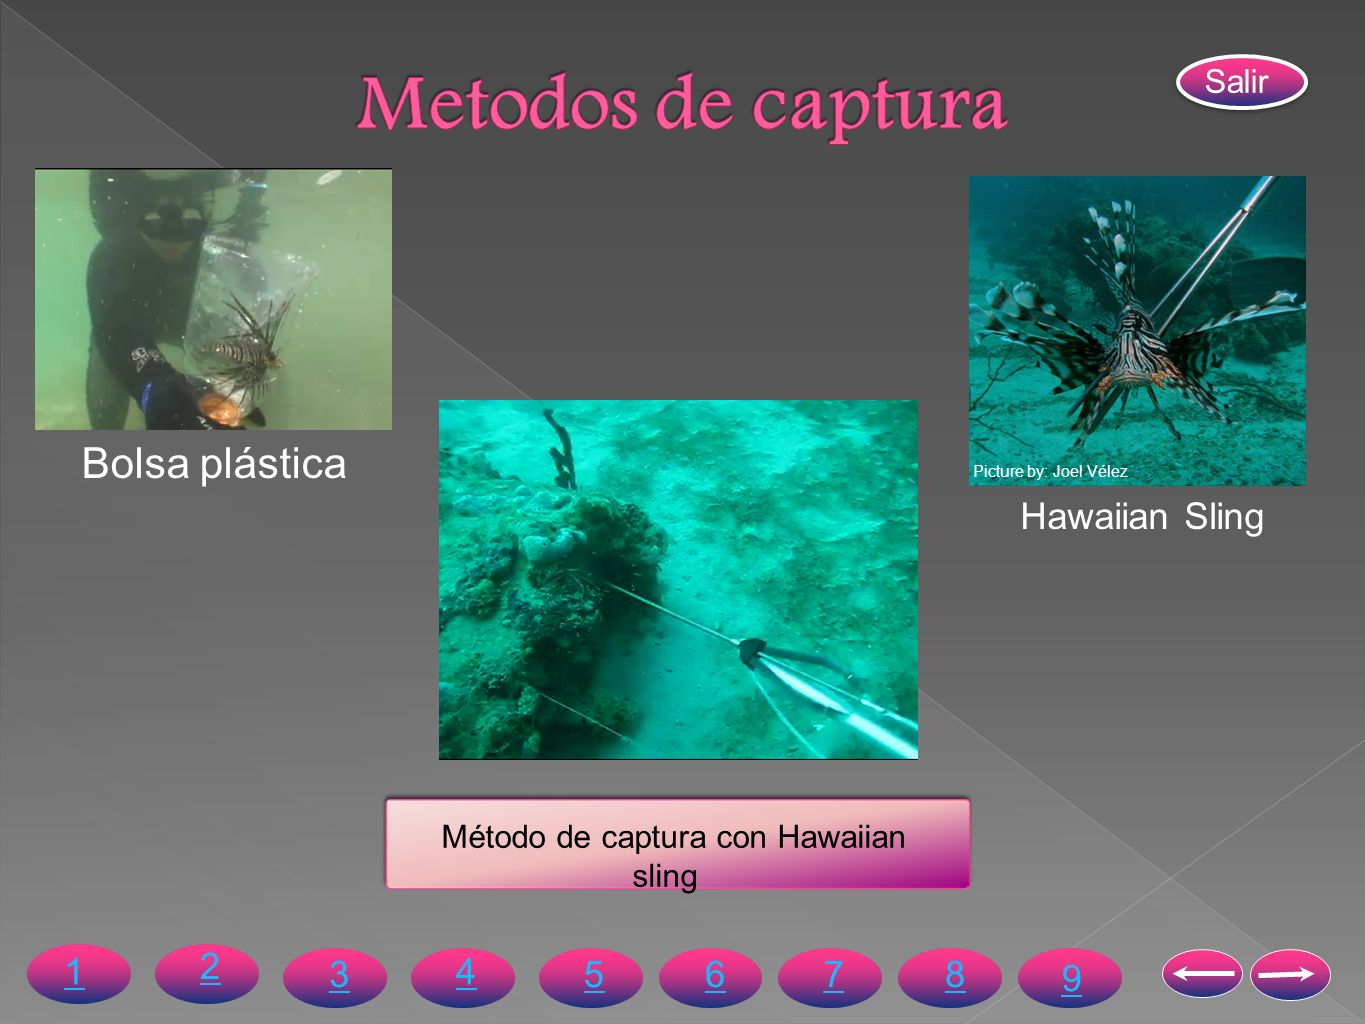 Método de captura con Hawaiian sling